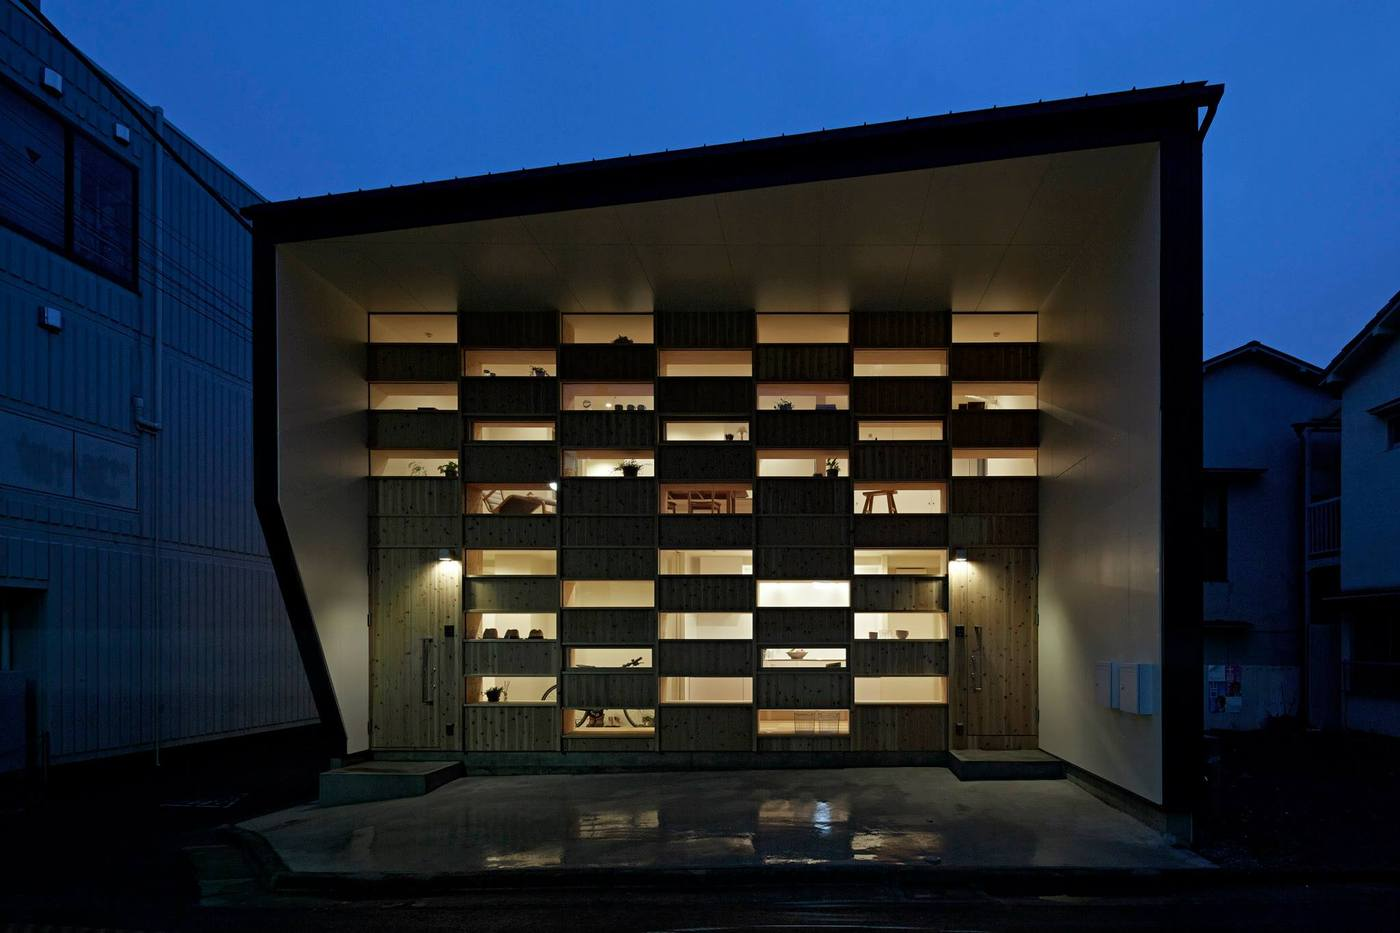 window-shelving-idea-save-space-and-get-privacy-4-thumb-1400xauto-53686